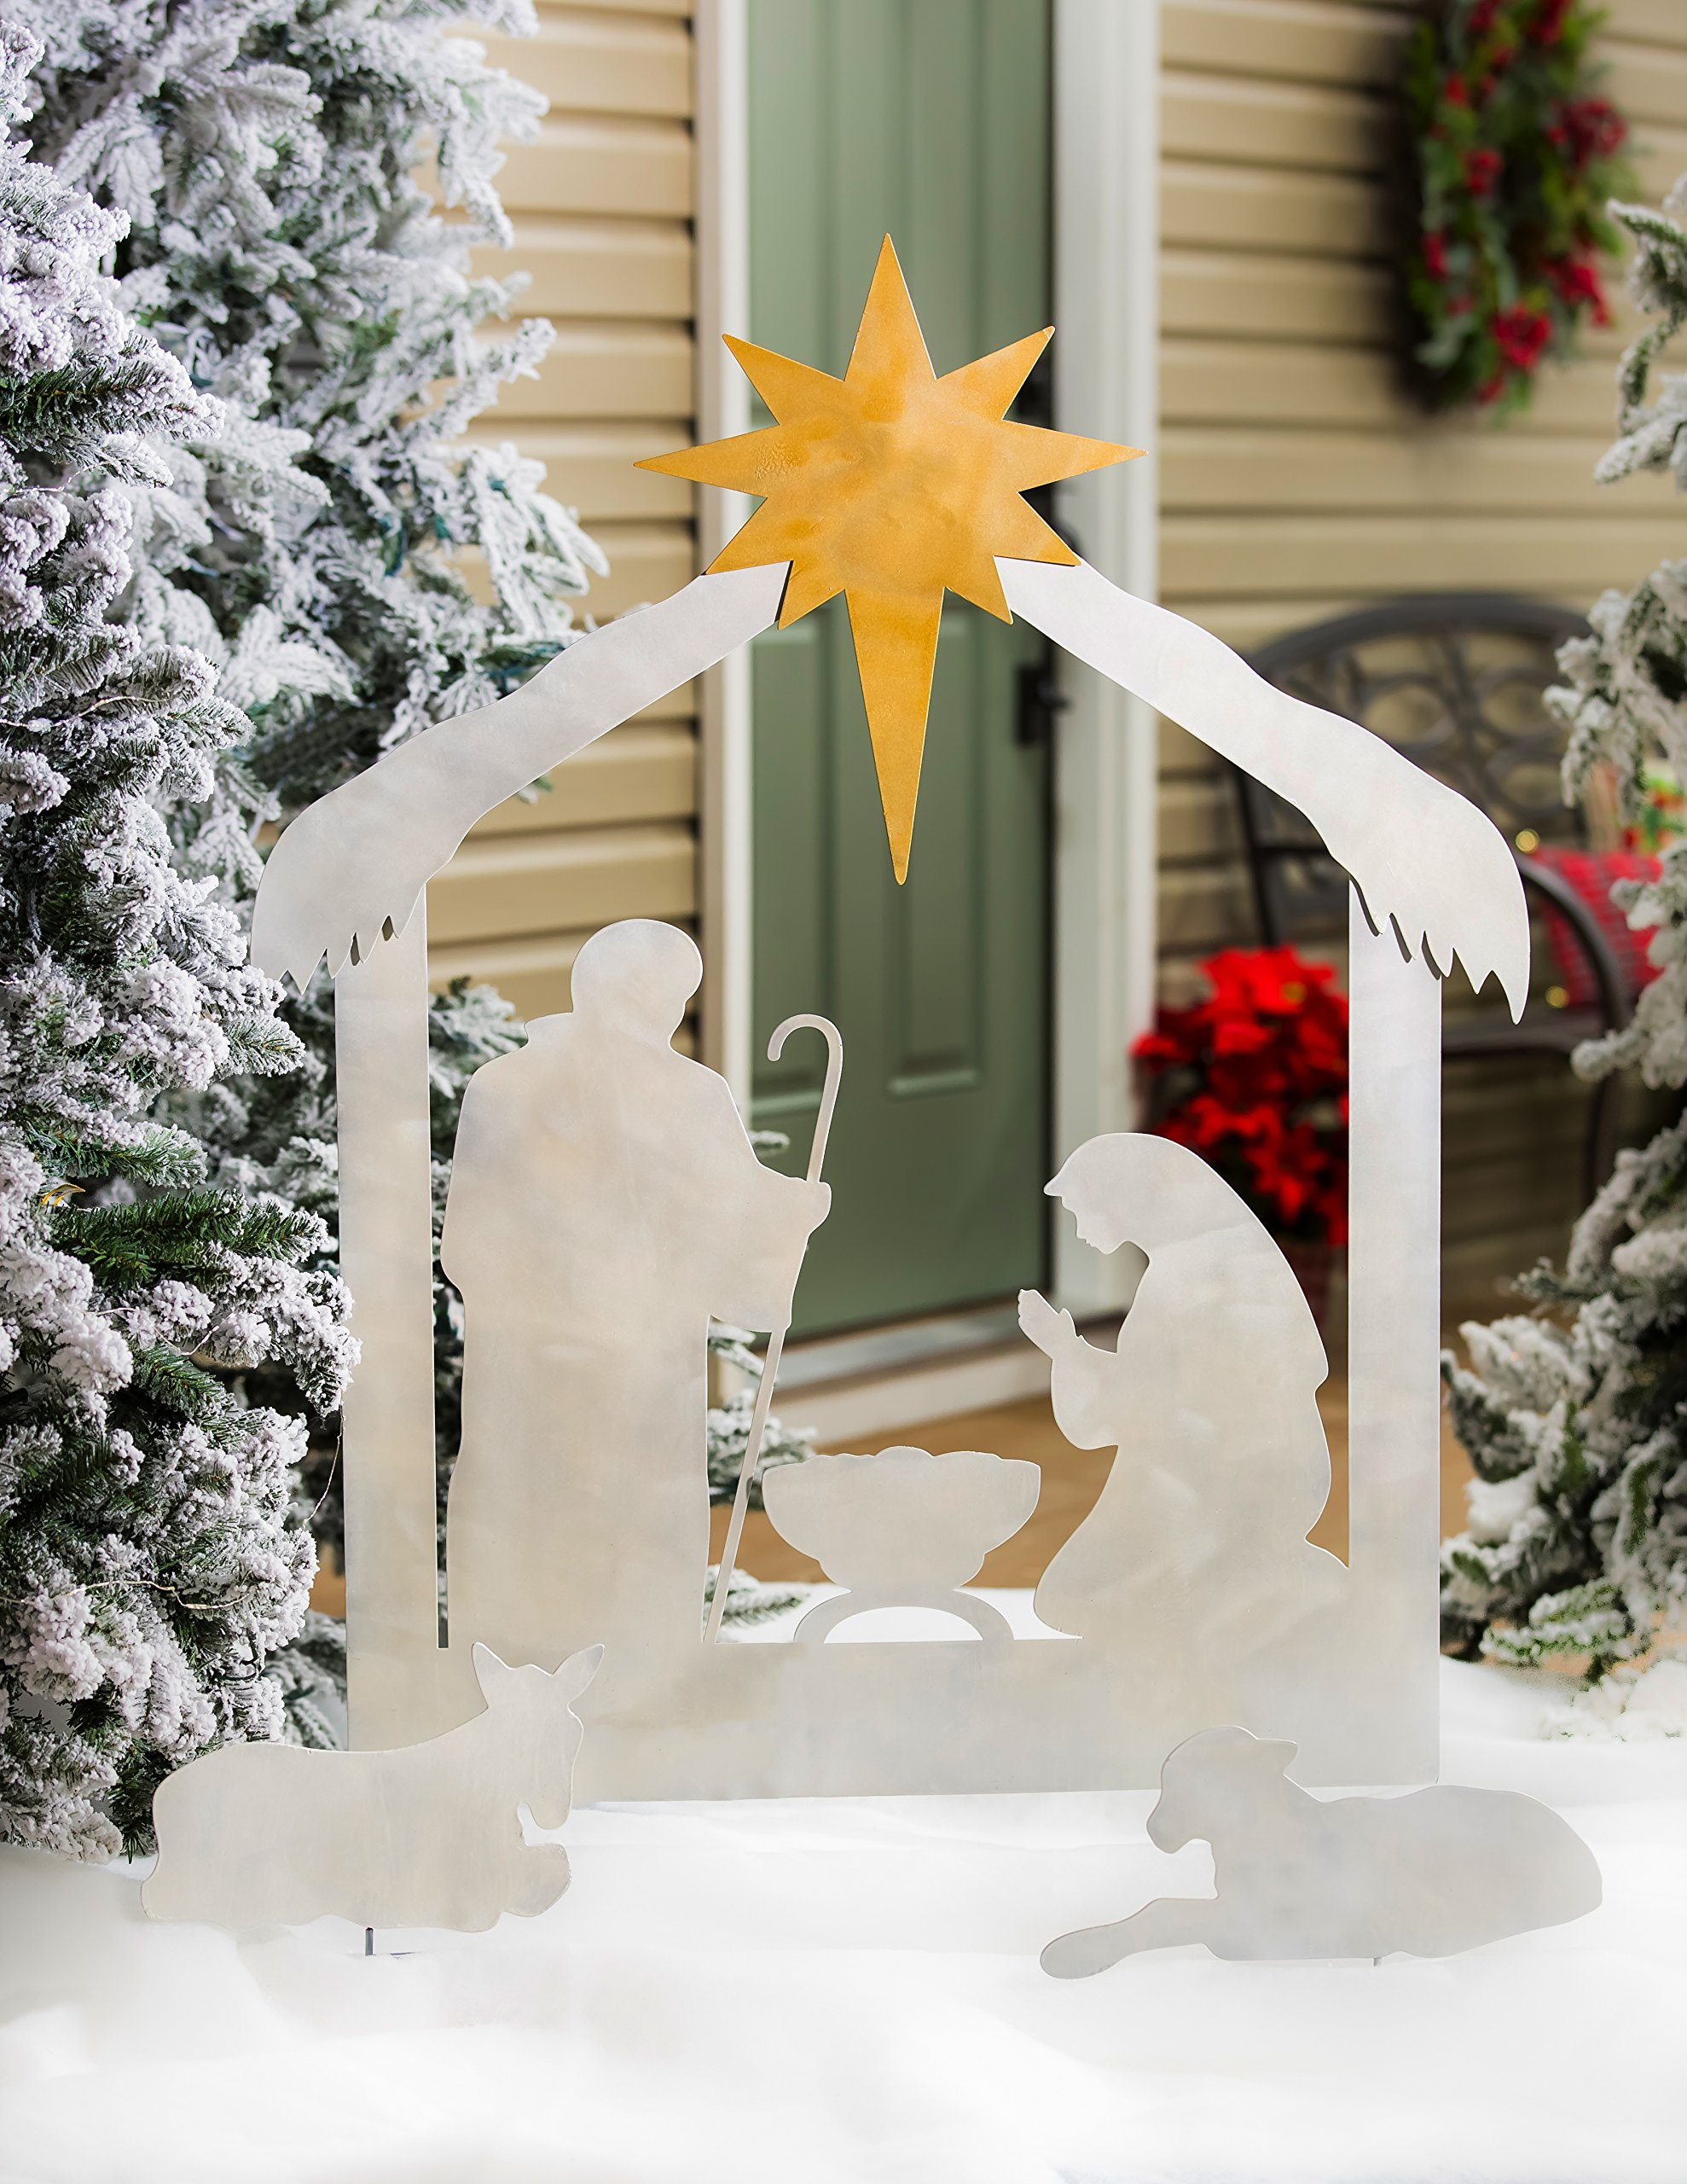 New Creative Christmas Nativity Scene, Laser Cut Metal Yard Décor by New Creative